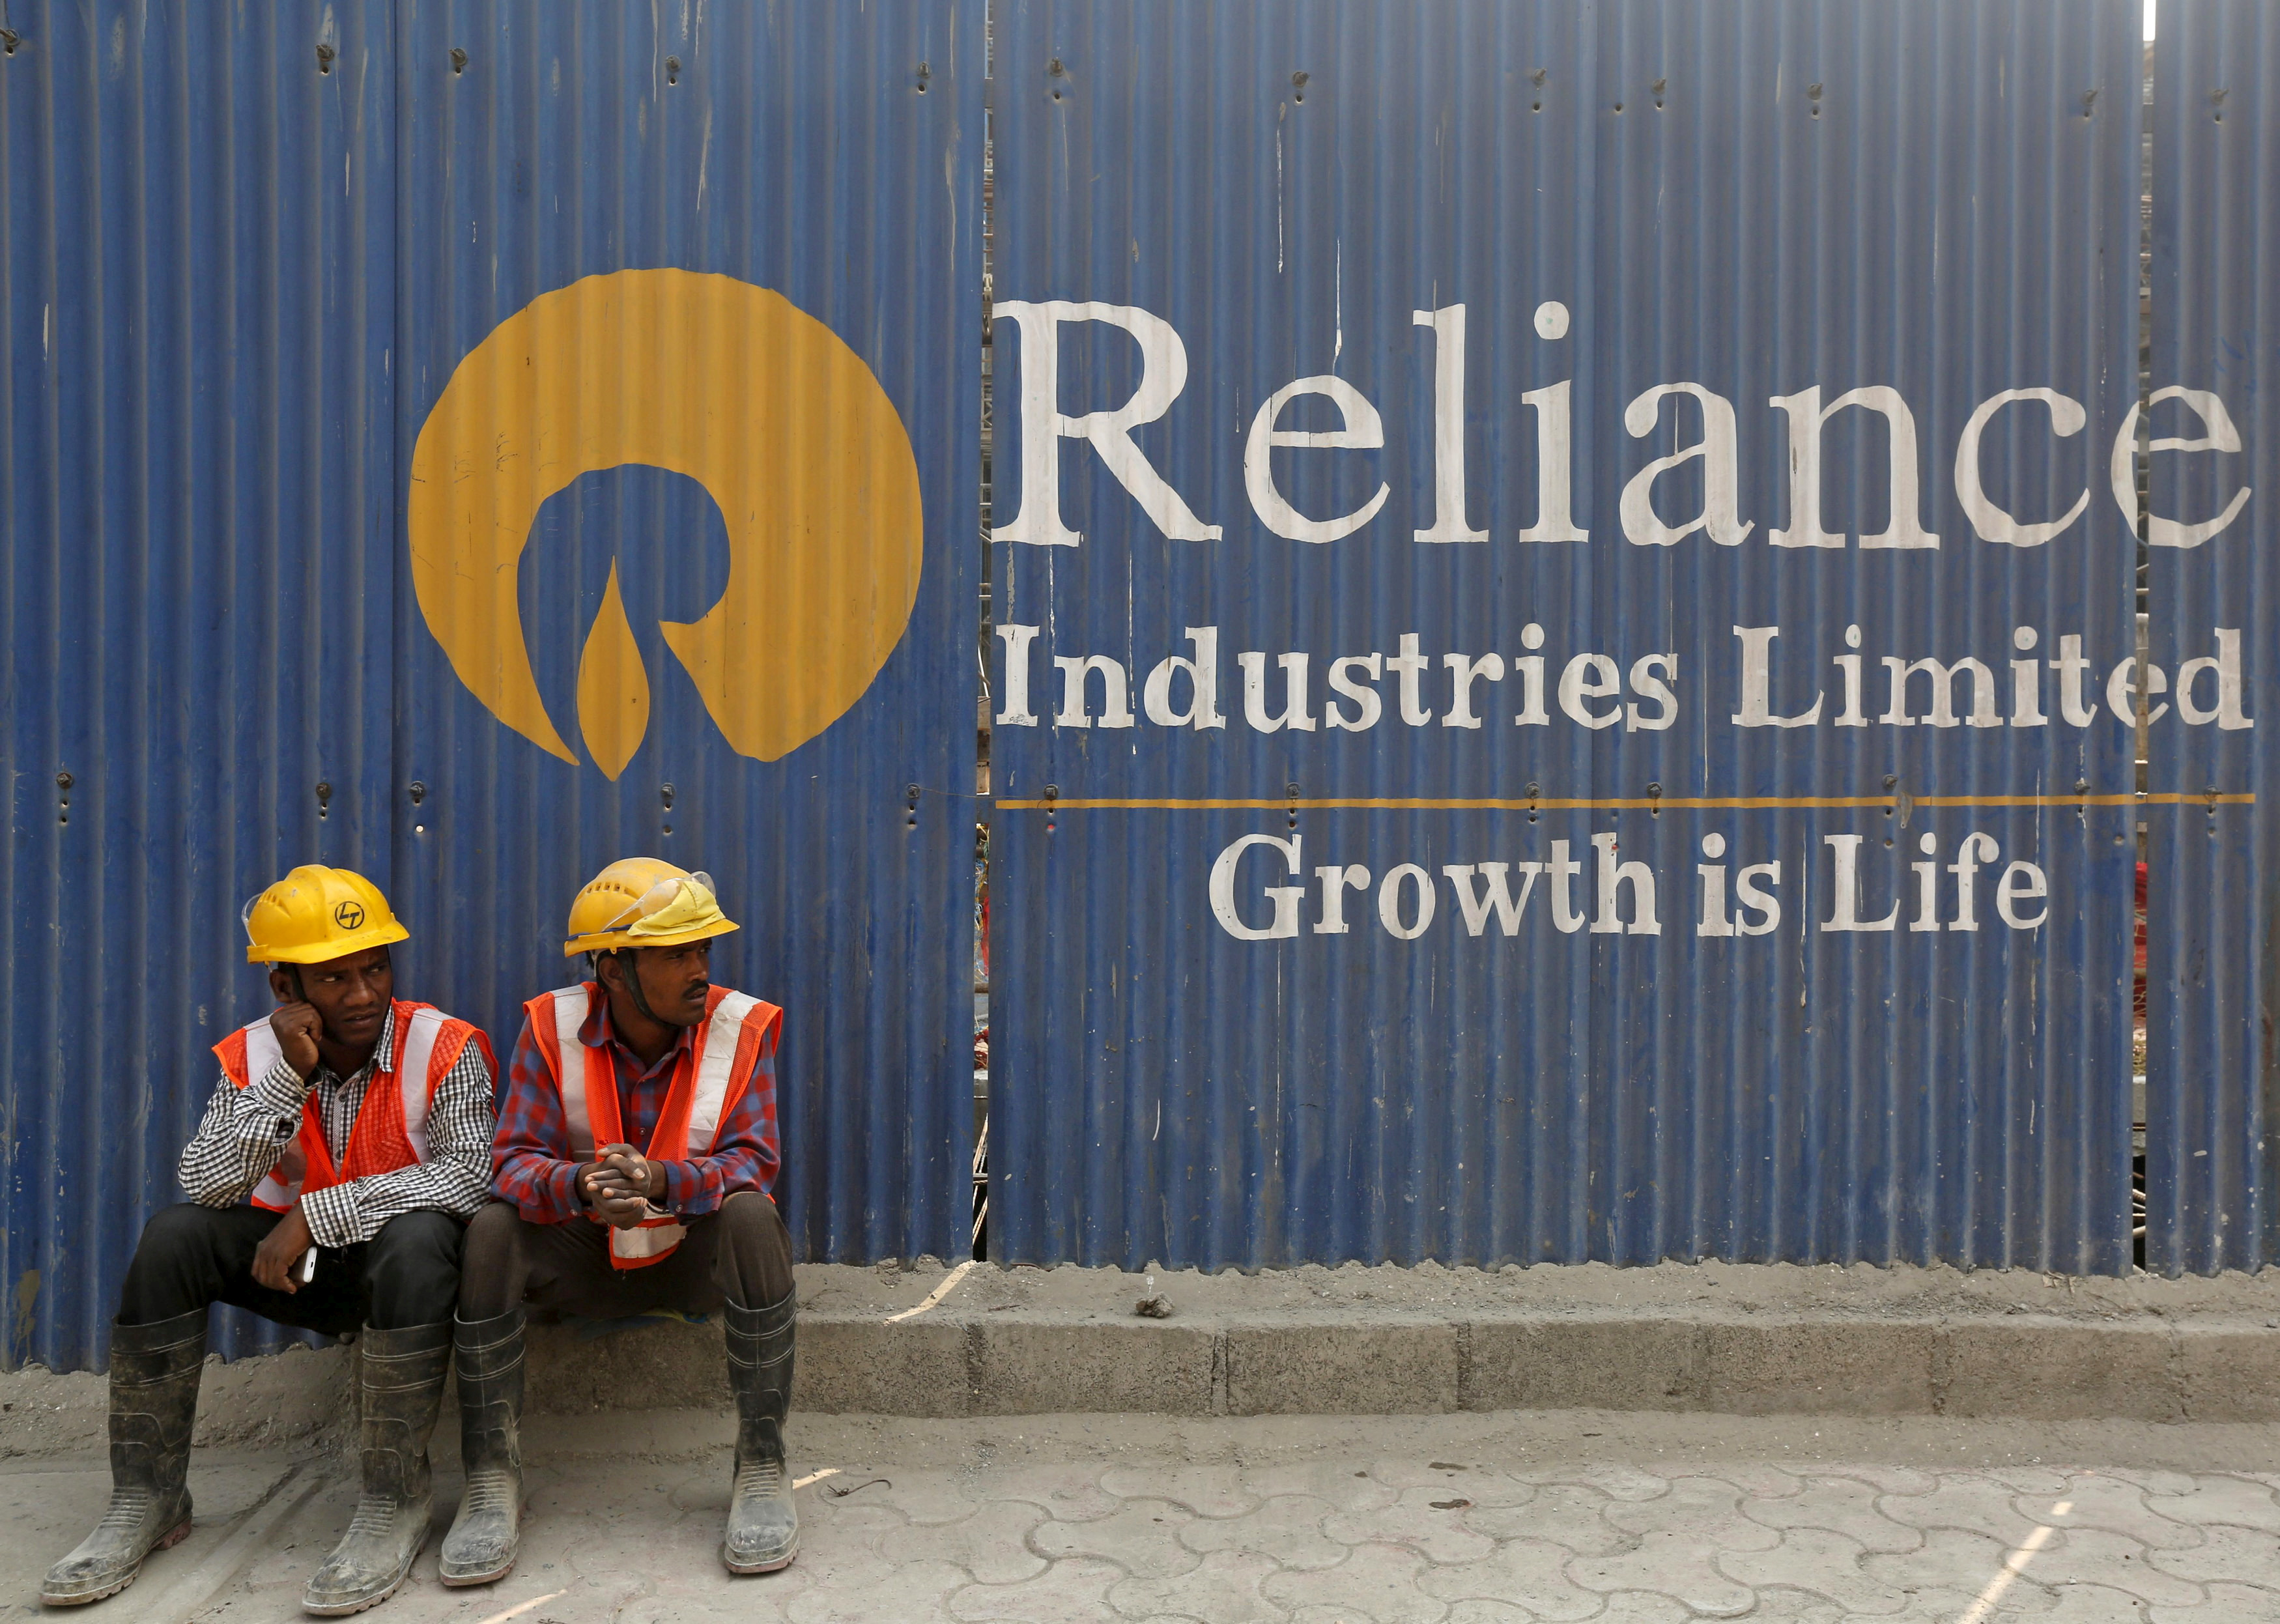 Labourers rest in front of an advertisement of Reliance Industries Limited at a construction site in Mumbai, India, March 2, 2016. REUTERS/Shailesh Andrade/File Photo